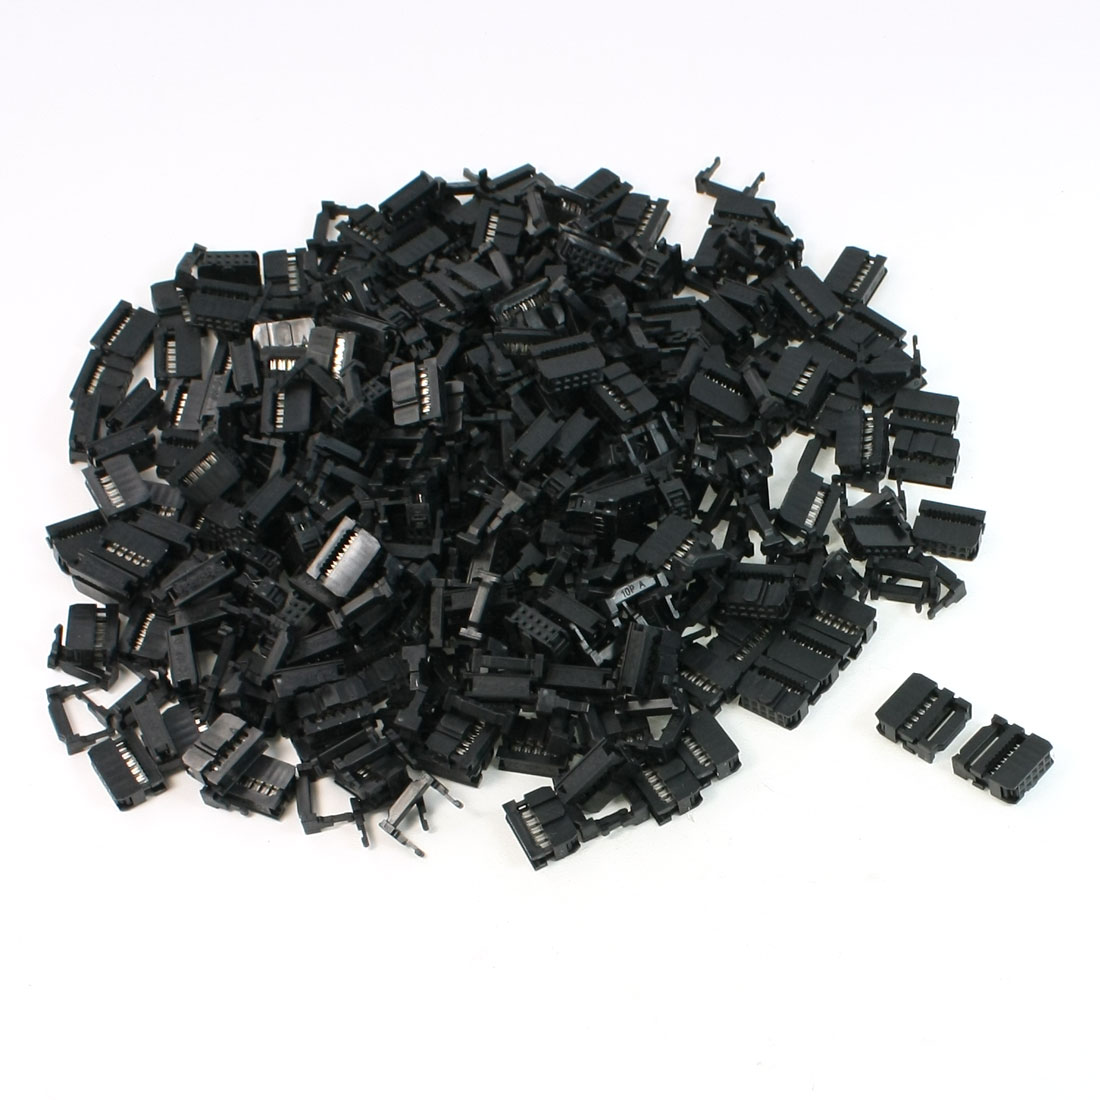 FC-10P 2.54mm Pitch Position Flat Cable IDC Socket Connector Black 200 Pcs